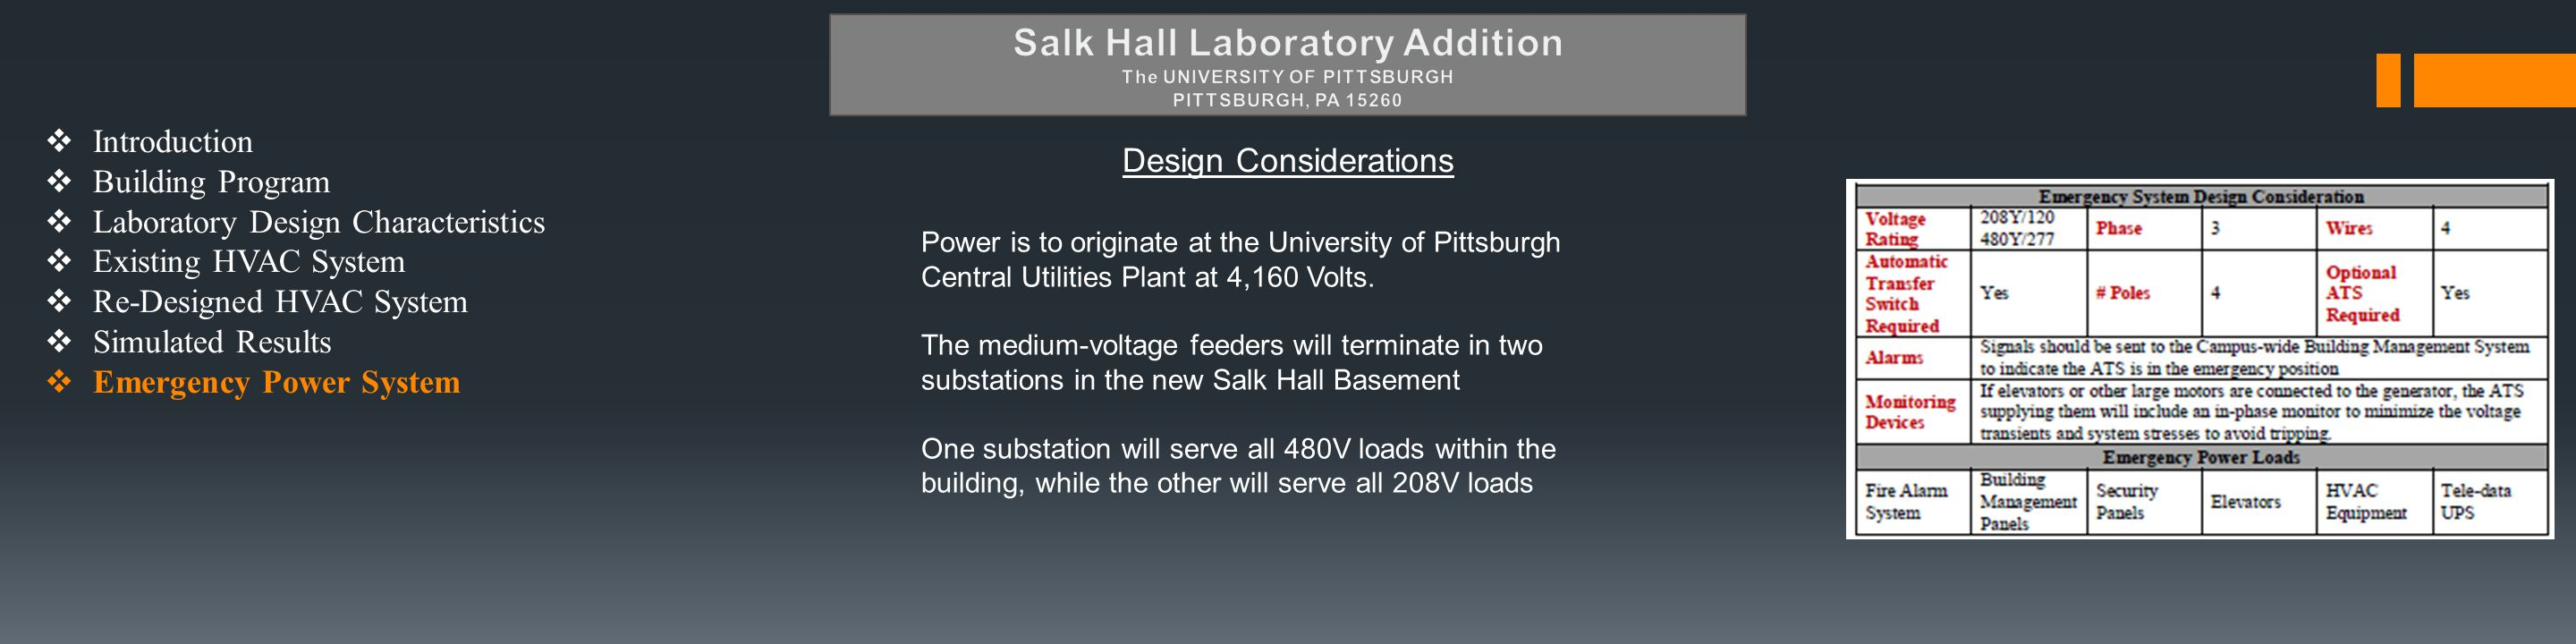  Introduction  Building Program  Laboratory Design Characteristics  Existing HVAC System  Re-Designed HVAC System  Simulated Results  Emergency Power System Design Considerations Power is to originate at the University of Pittsburgh Central Utilities Plant at 4,160 Volts.